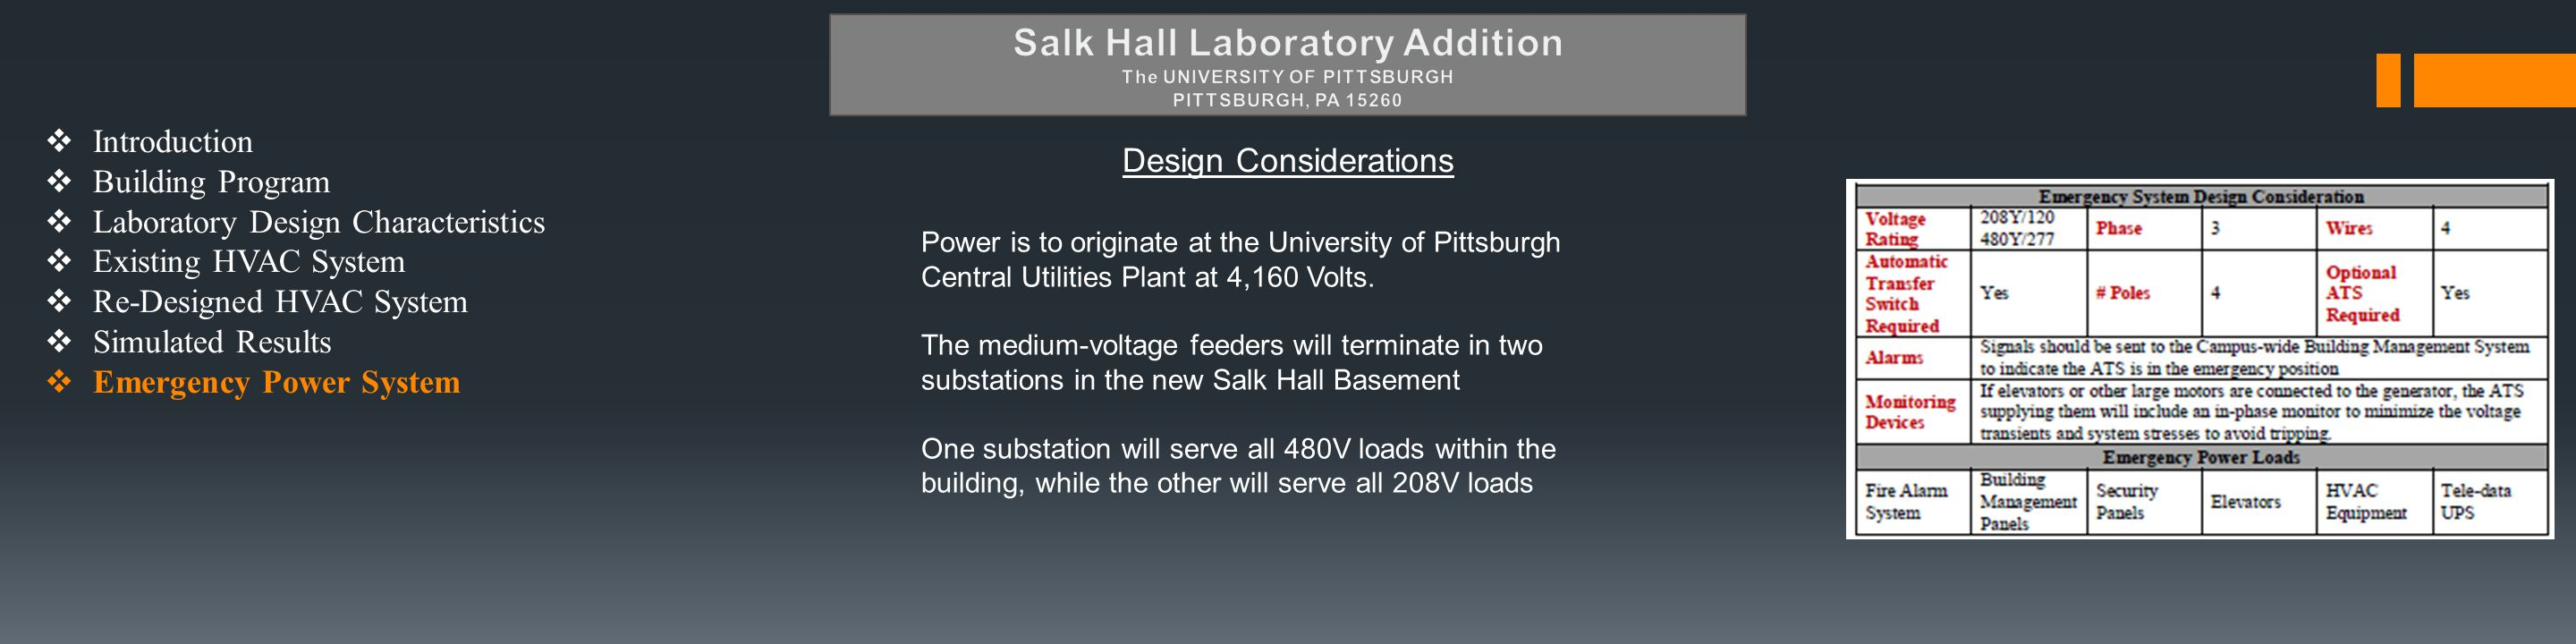  Introduction  Building Program  Laboratory Design Characteristics  Existing HVAC System  Re-Designed HVAC System  Simulated Results  Emergency Power System Design Considerations Power is to originate at the University of Pittsburgh Central Utilities Plant at 4,160 Volts.